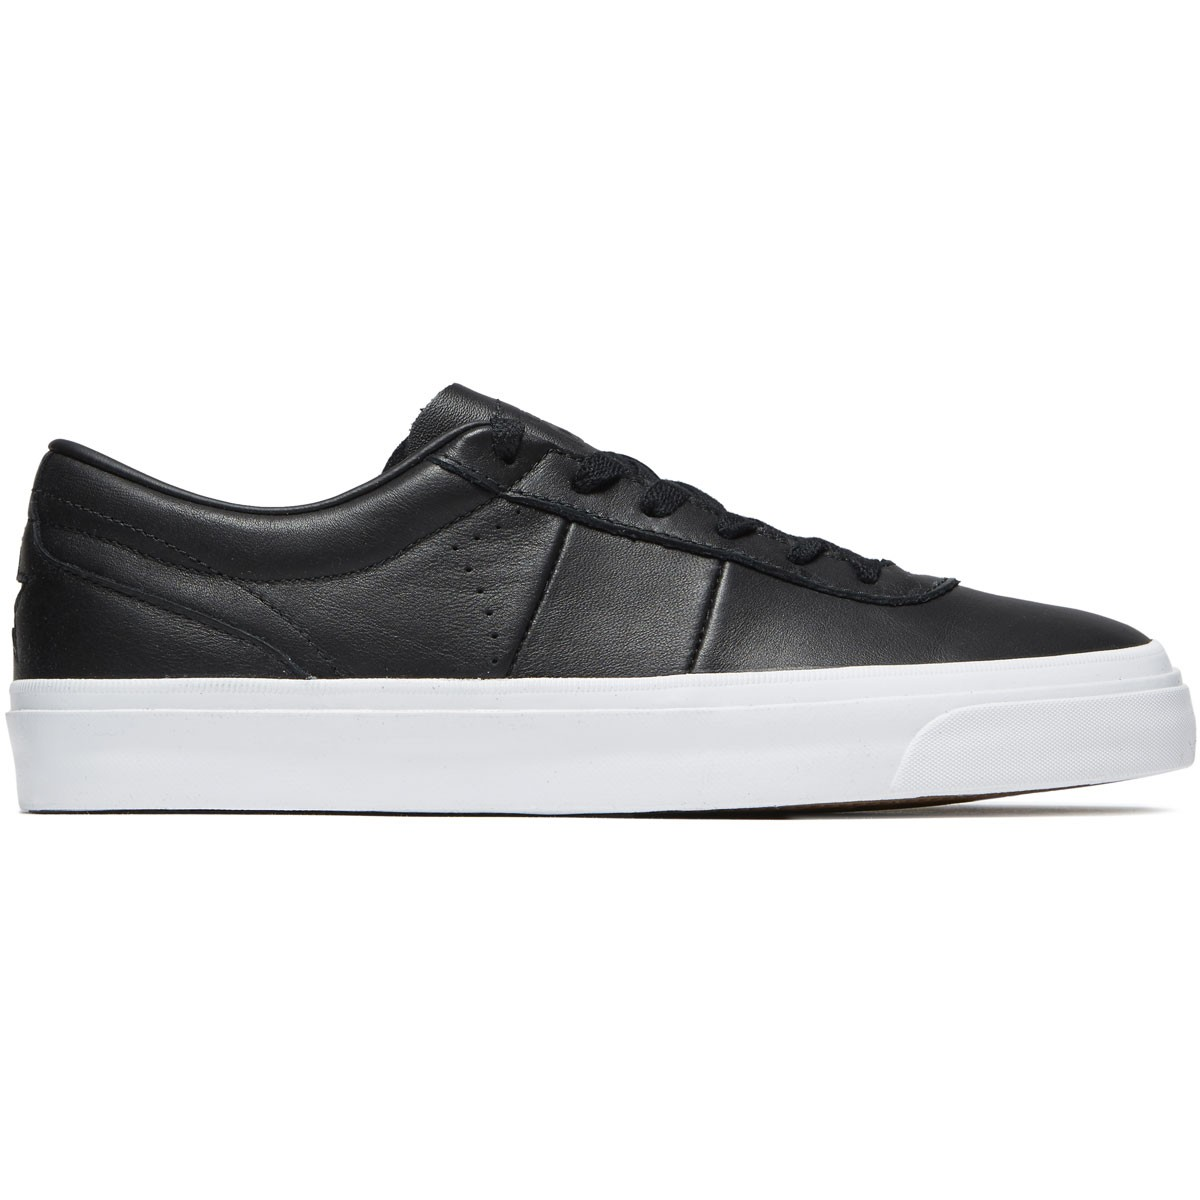 3d14582e56d2 Converse One Star CC Pro Ox Shoes - Black Black White - 8.0